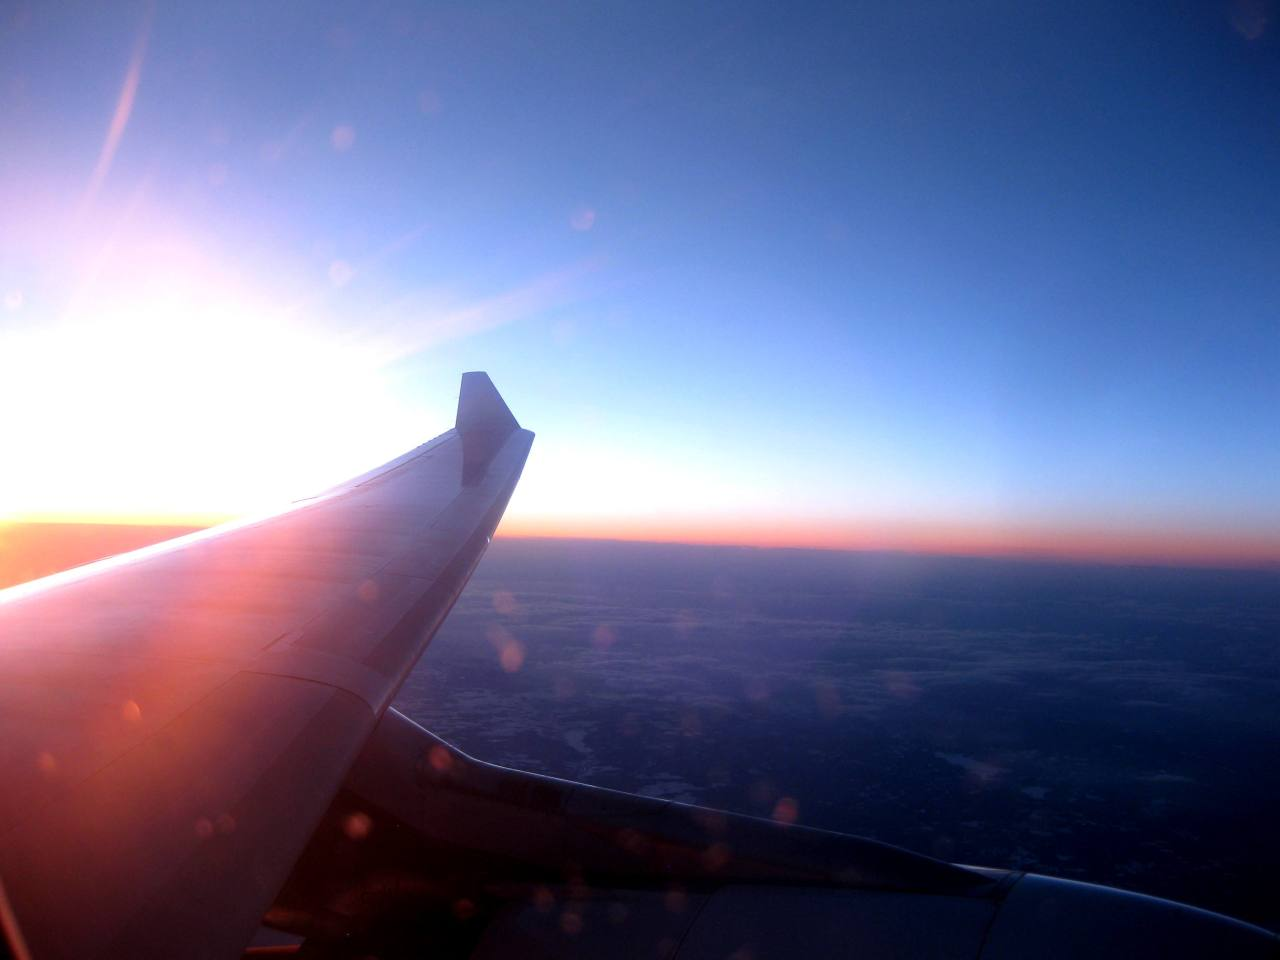 Staring out an aeroplane window into the sunset.